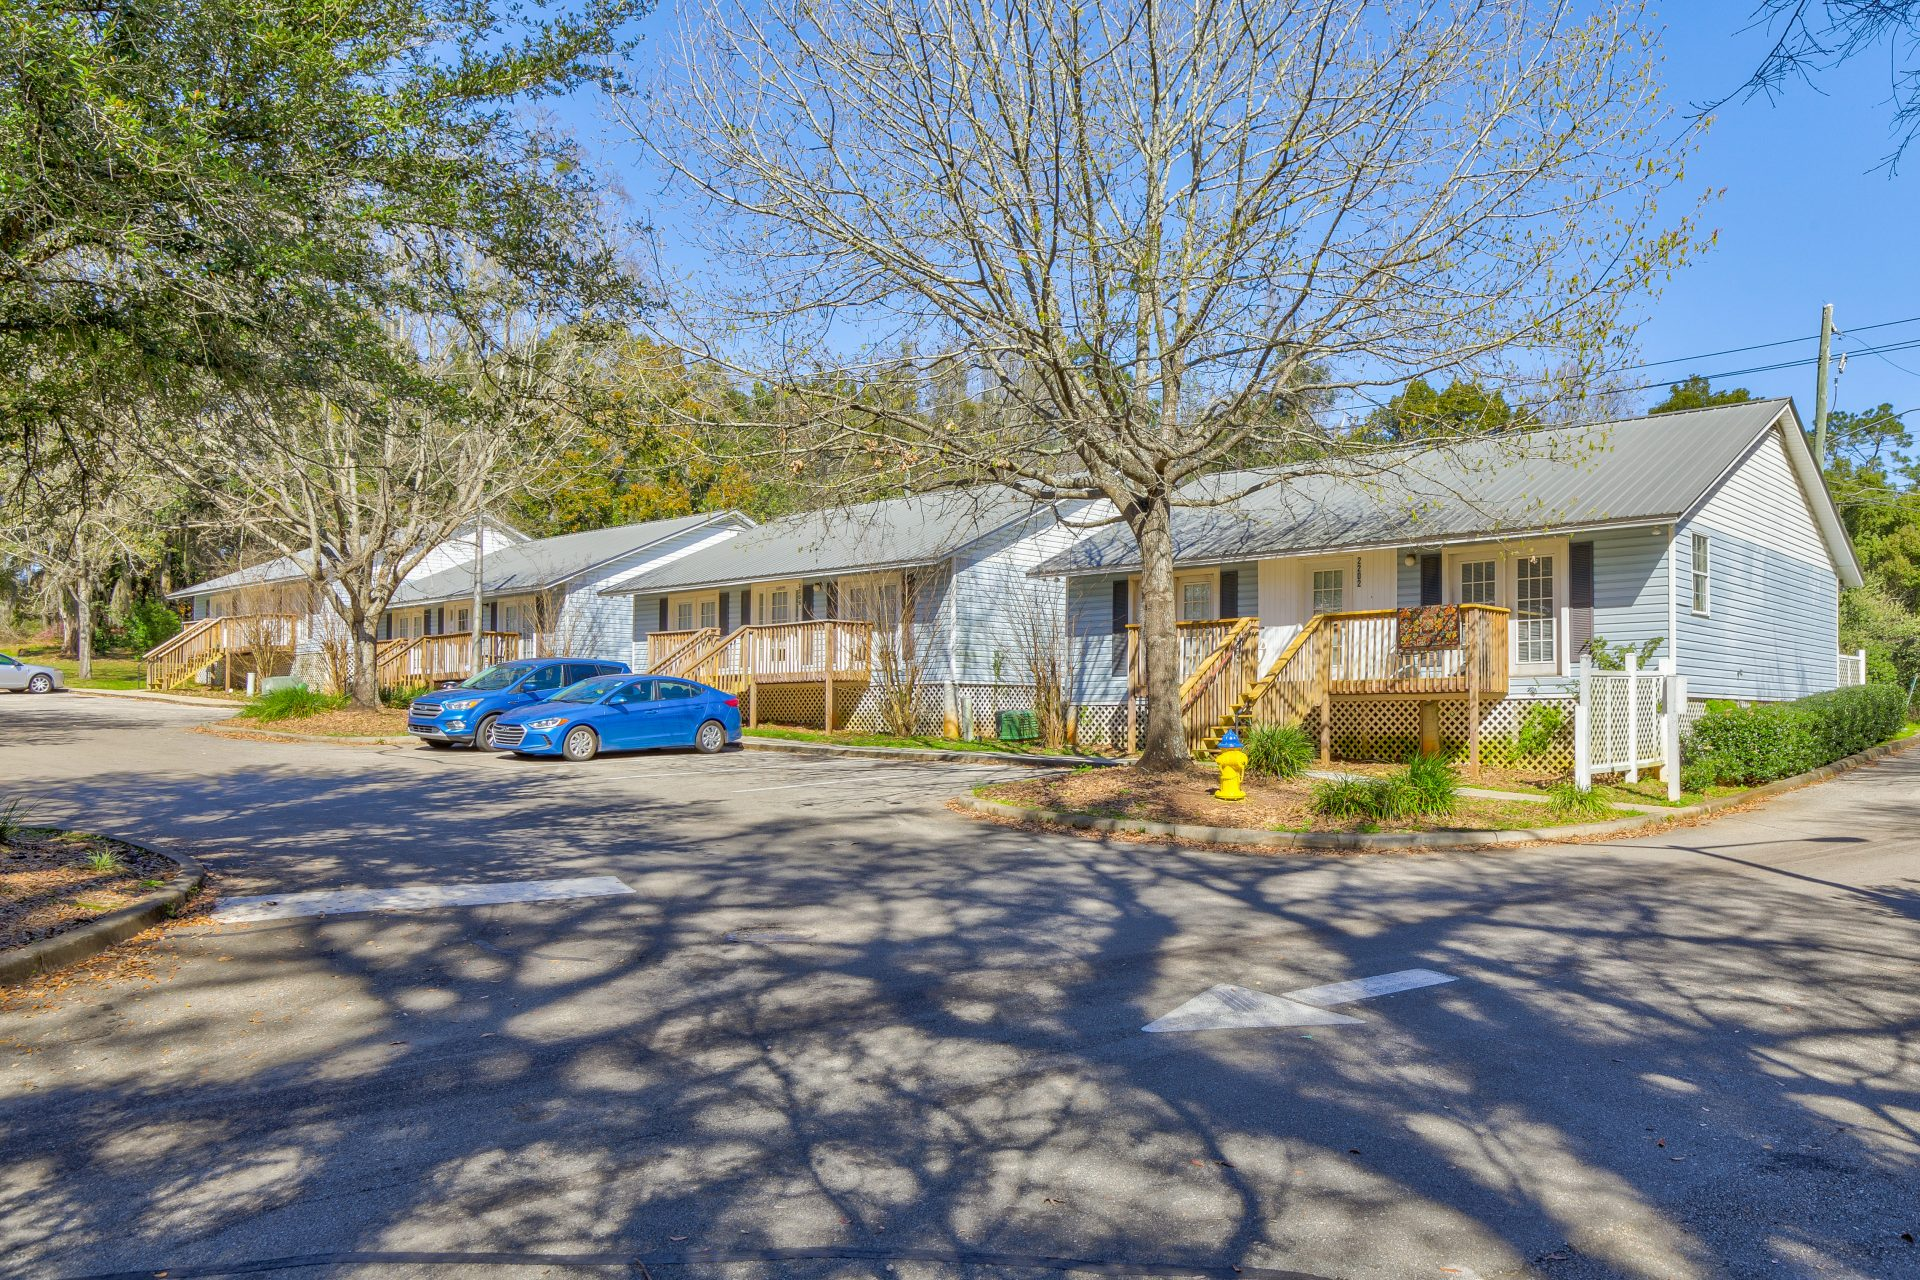 The_Cottages_at_Magnolia-FINAL-FULL_RES-21